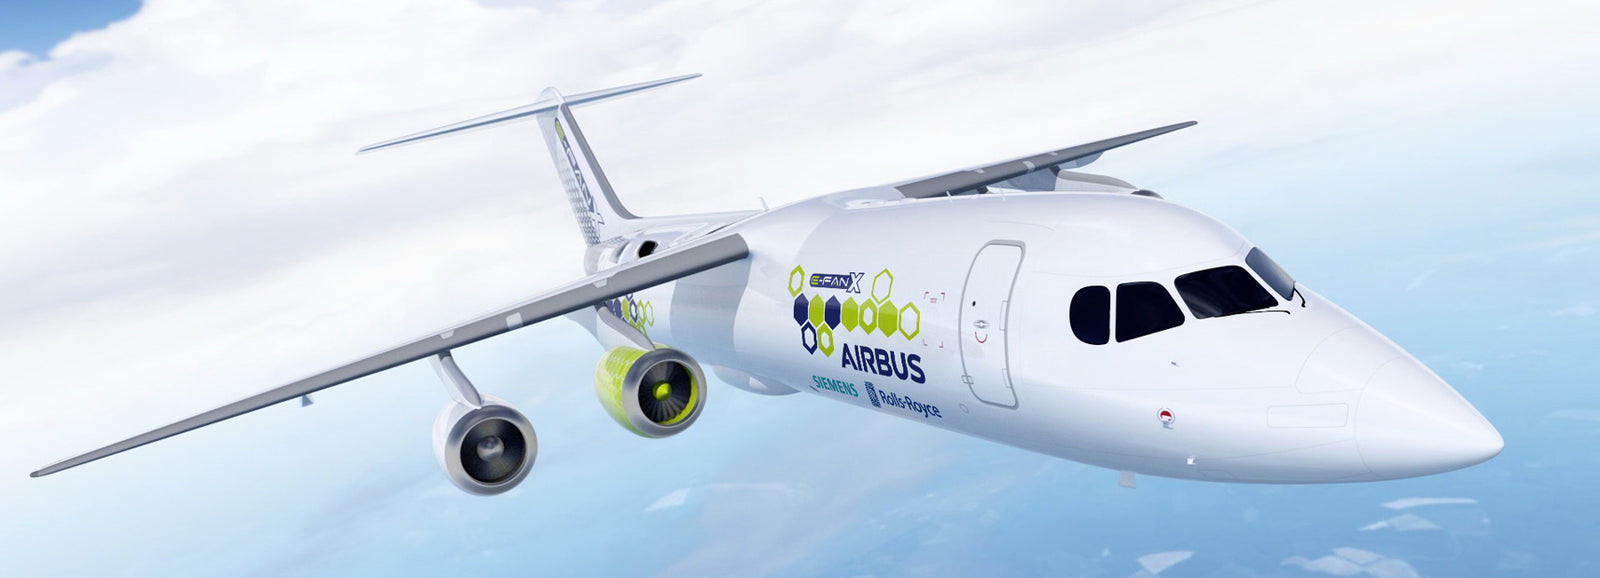 Siemens, Airbus and Rolls-Royce Team Up to Create a Hybrid-Electric Airplane